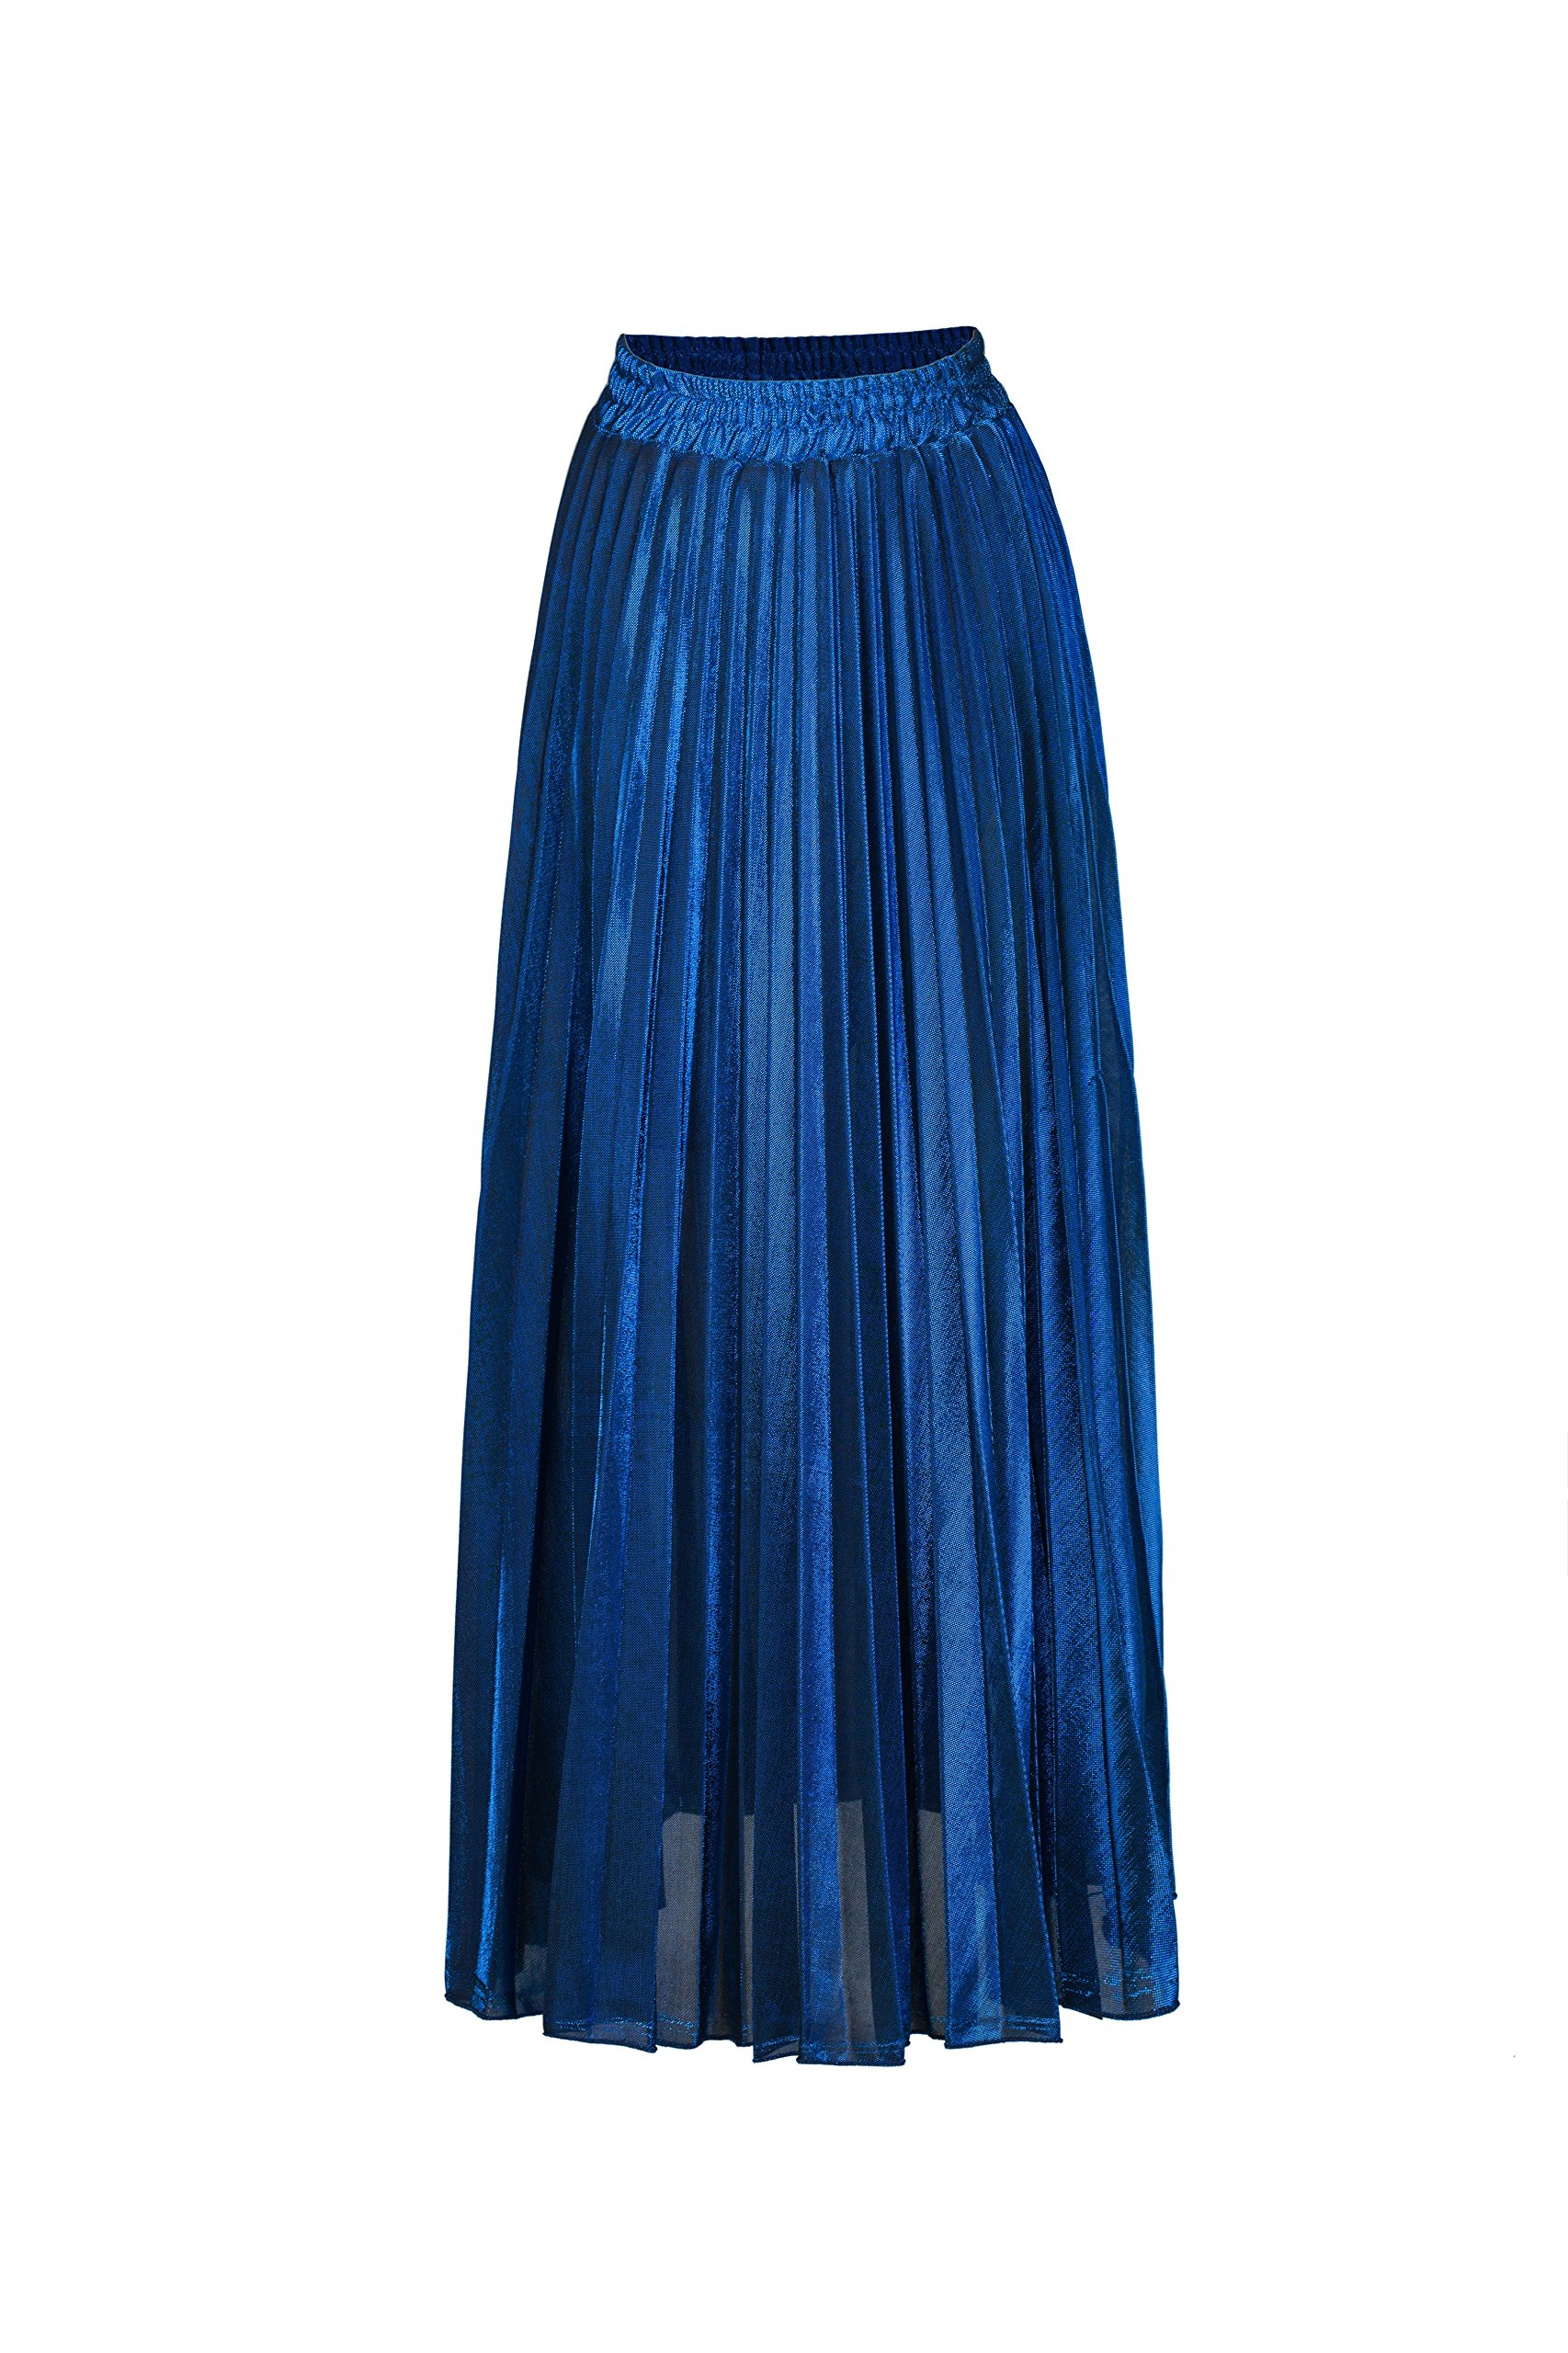 ACE SHOCK Pleated Skirts for Women Long, High Waist Slim Ball Gown Shiny Shimmer Accordion Maxi Skirt (Tag Size S, Jewelry Blue)